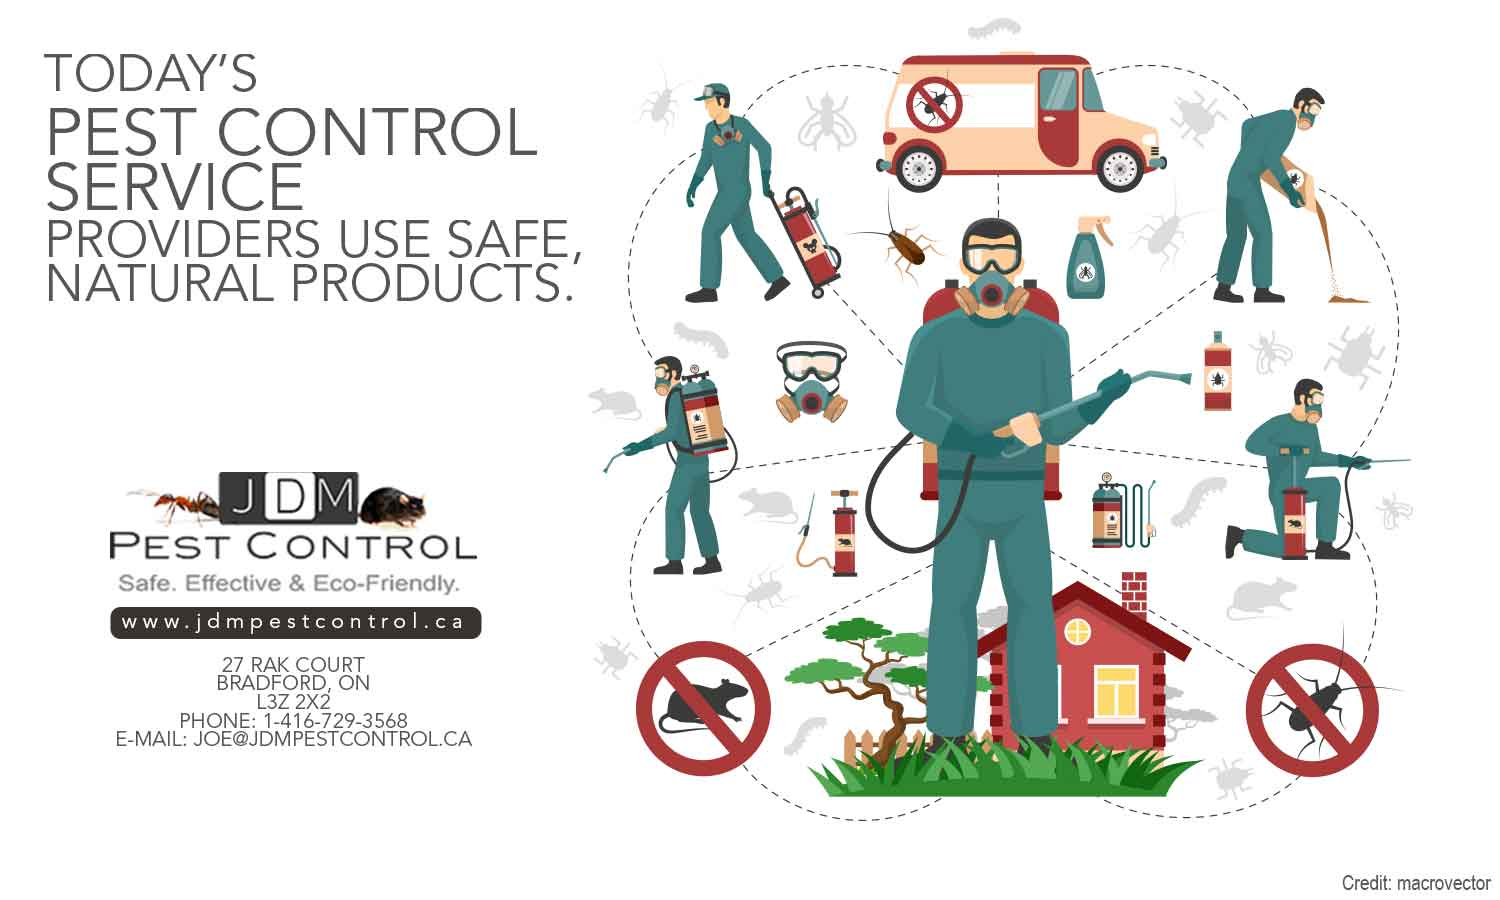 Today's pest control service providers use safe, natural products.